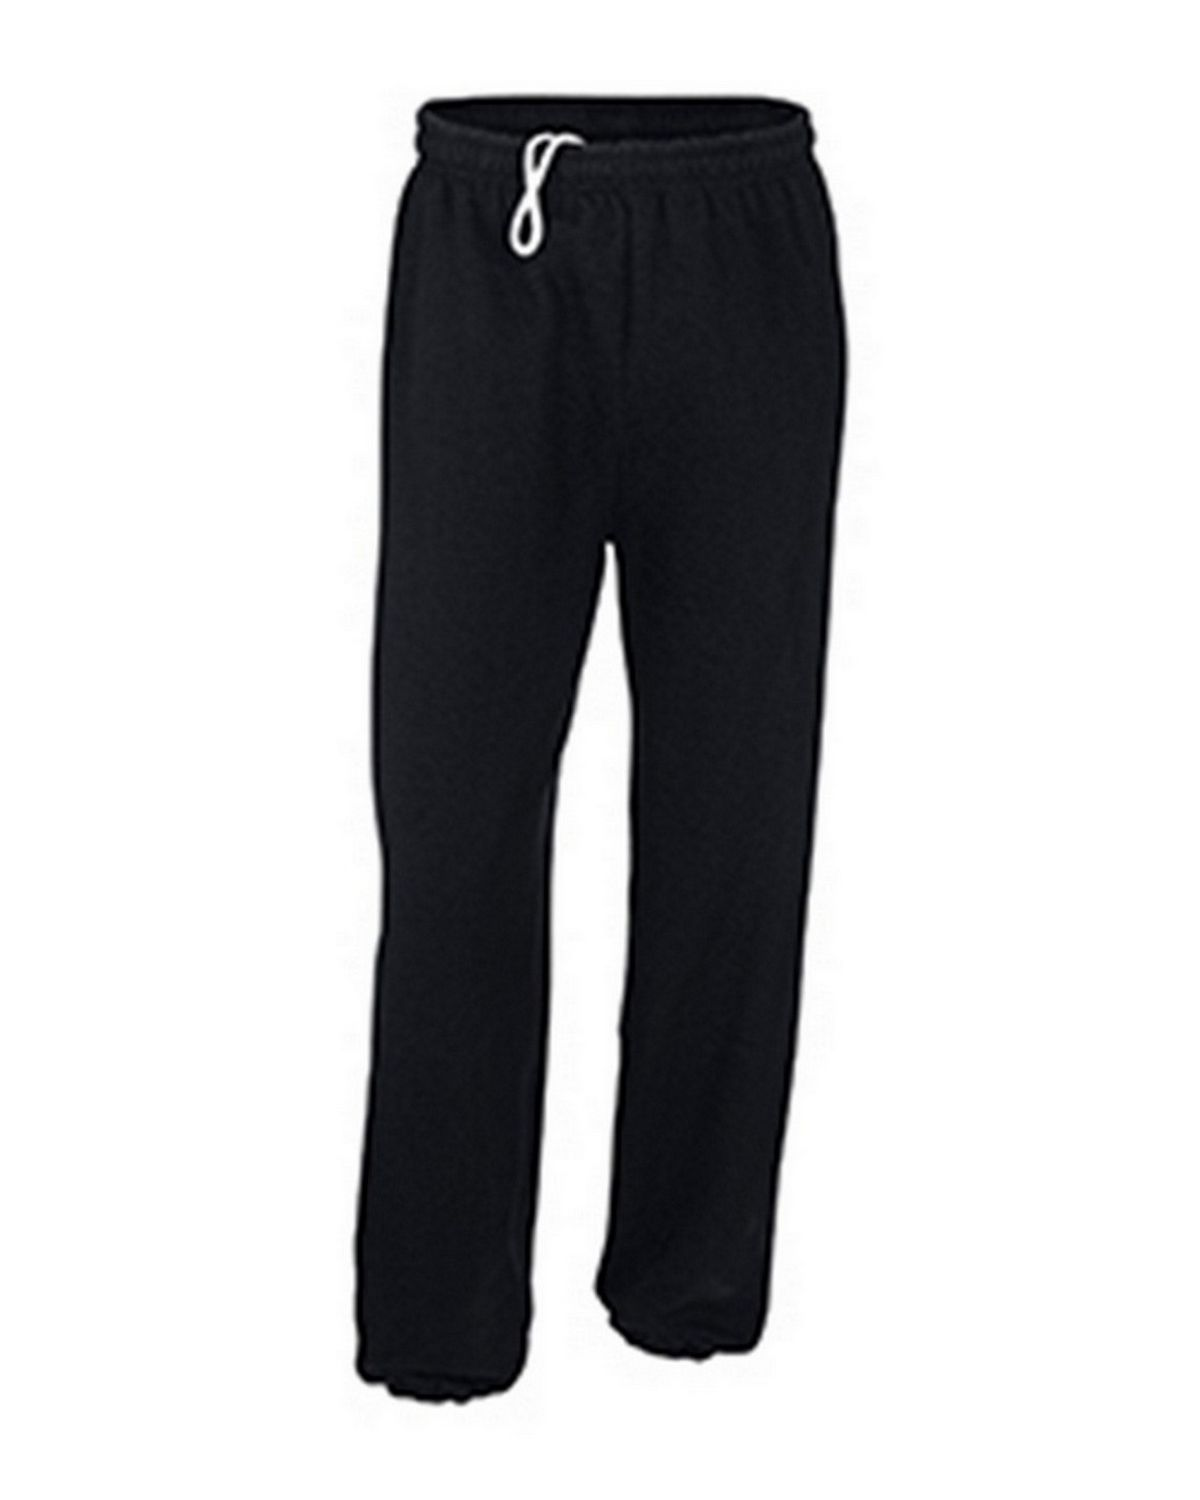 Gildan G18200 Heavy Blend Adult Sweatpants - Black - 2X G18200